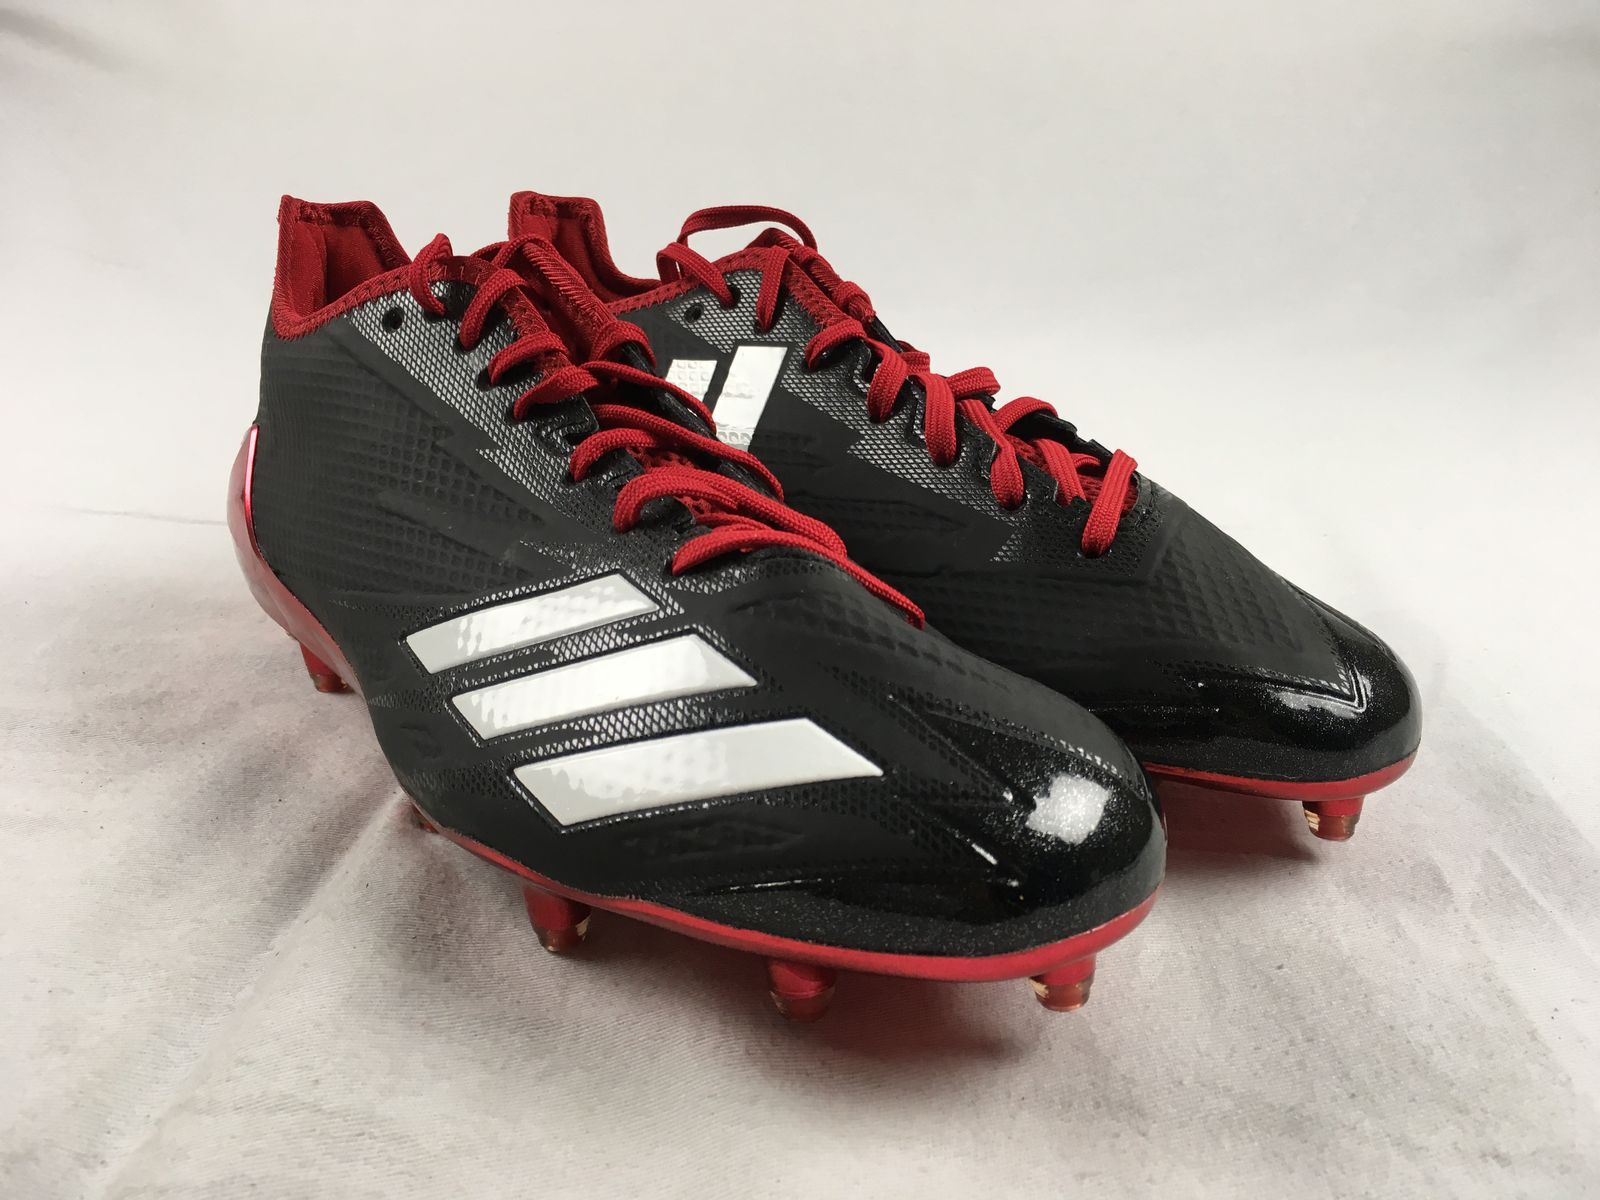 meet f2dcd becbf Details about NEW adidas adizero 5-Star 6.0 Low - BlackRed Cleats (Mens  Multiple Sizes)